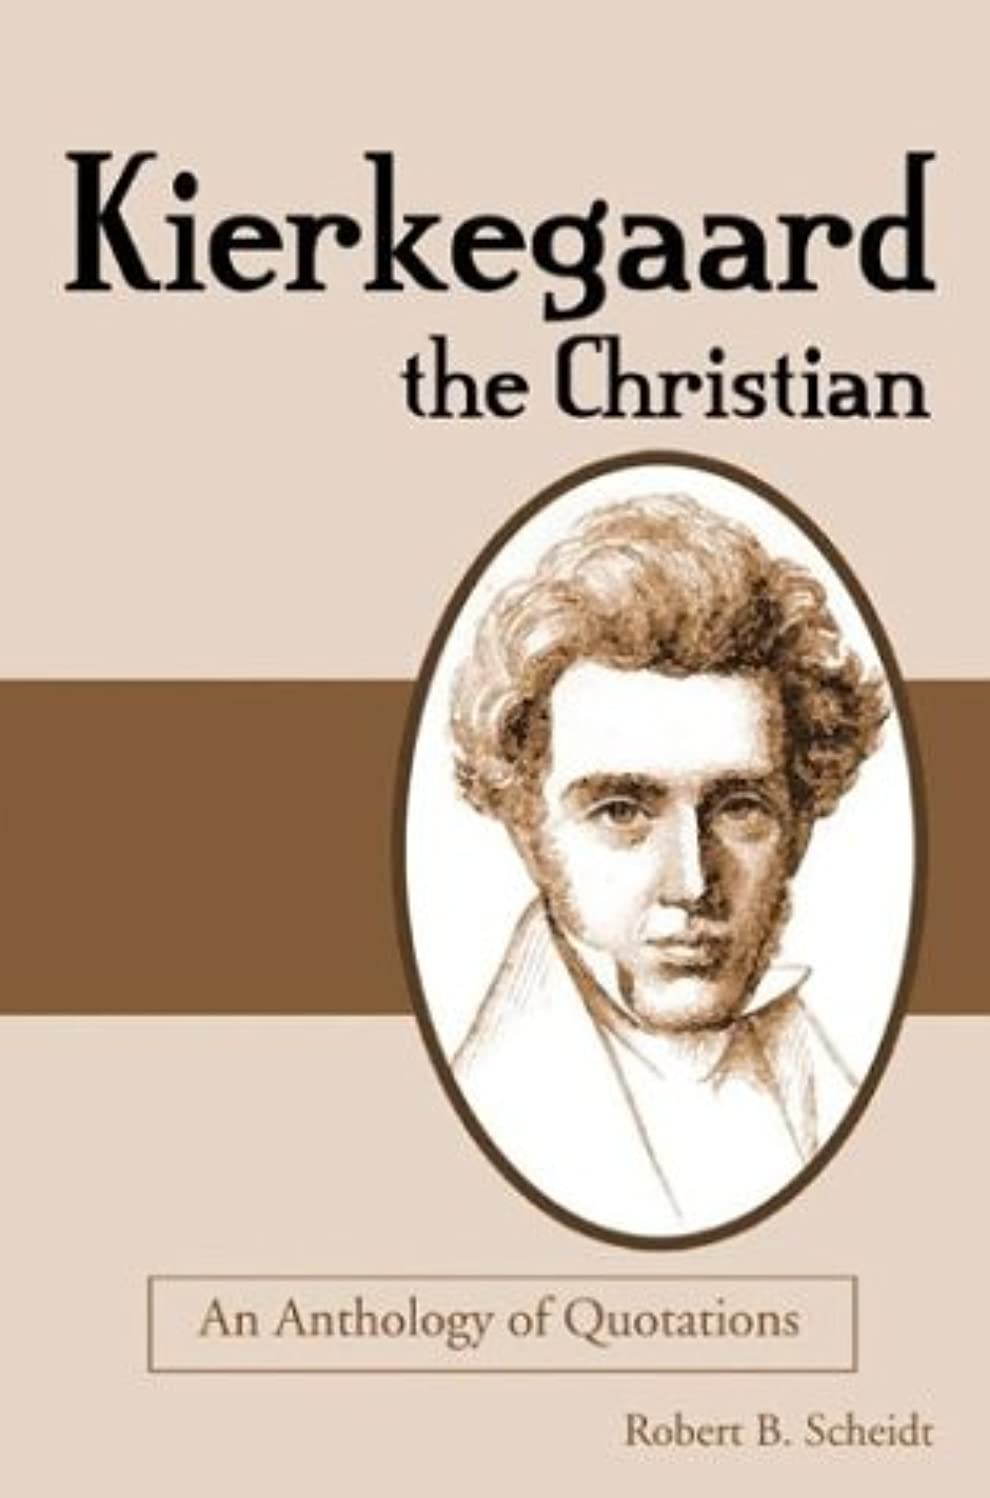 Kierkegaard the Christian: An Anthology of Quotations